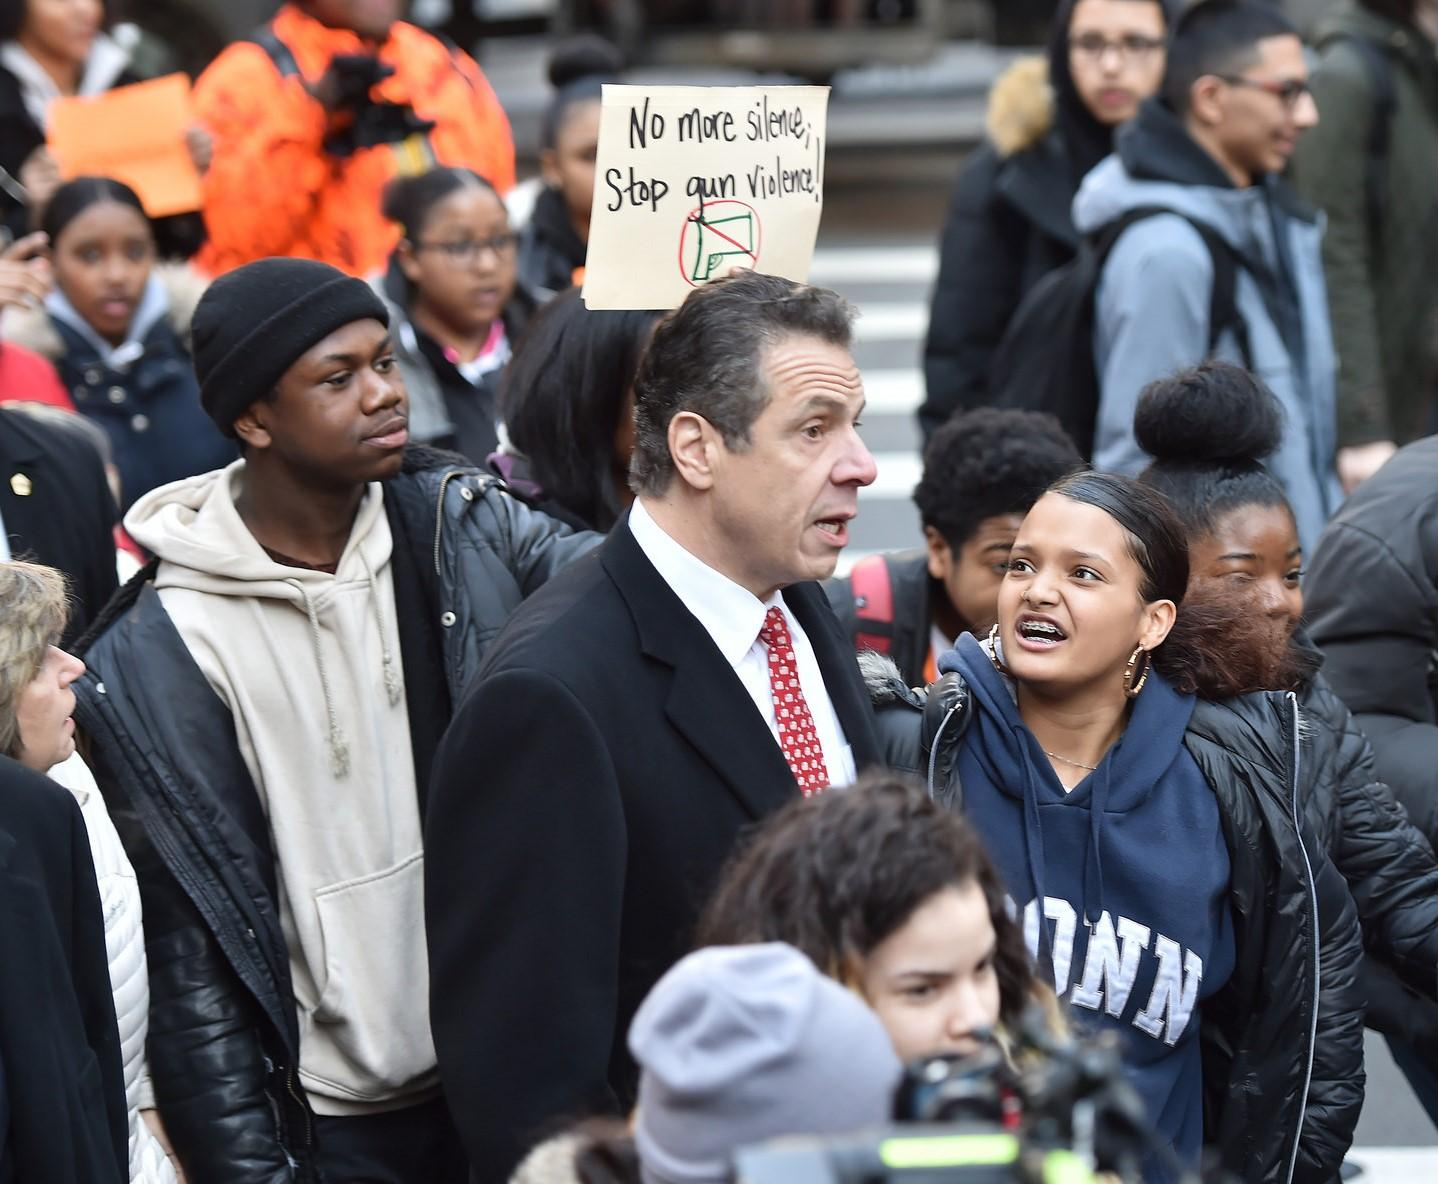 Cuomo: New York schools shouldn't discipline students for walkouts